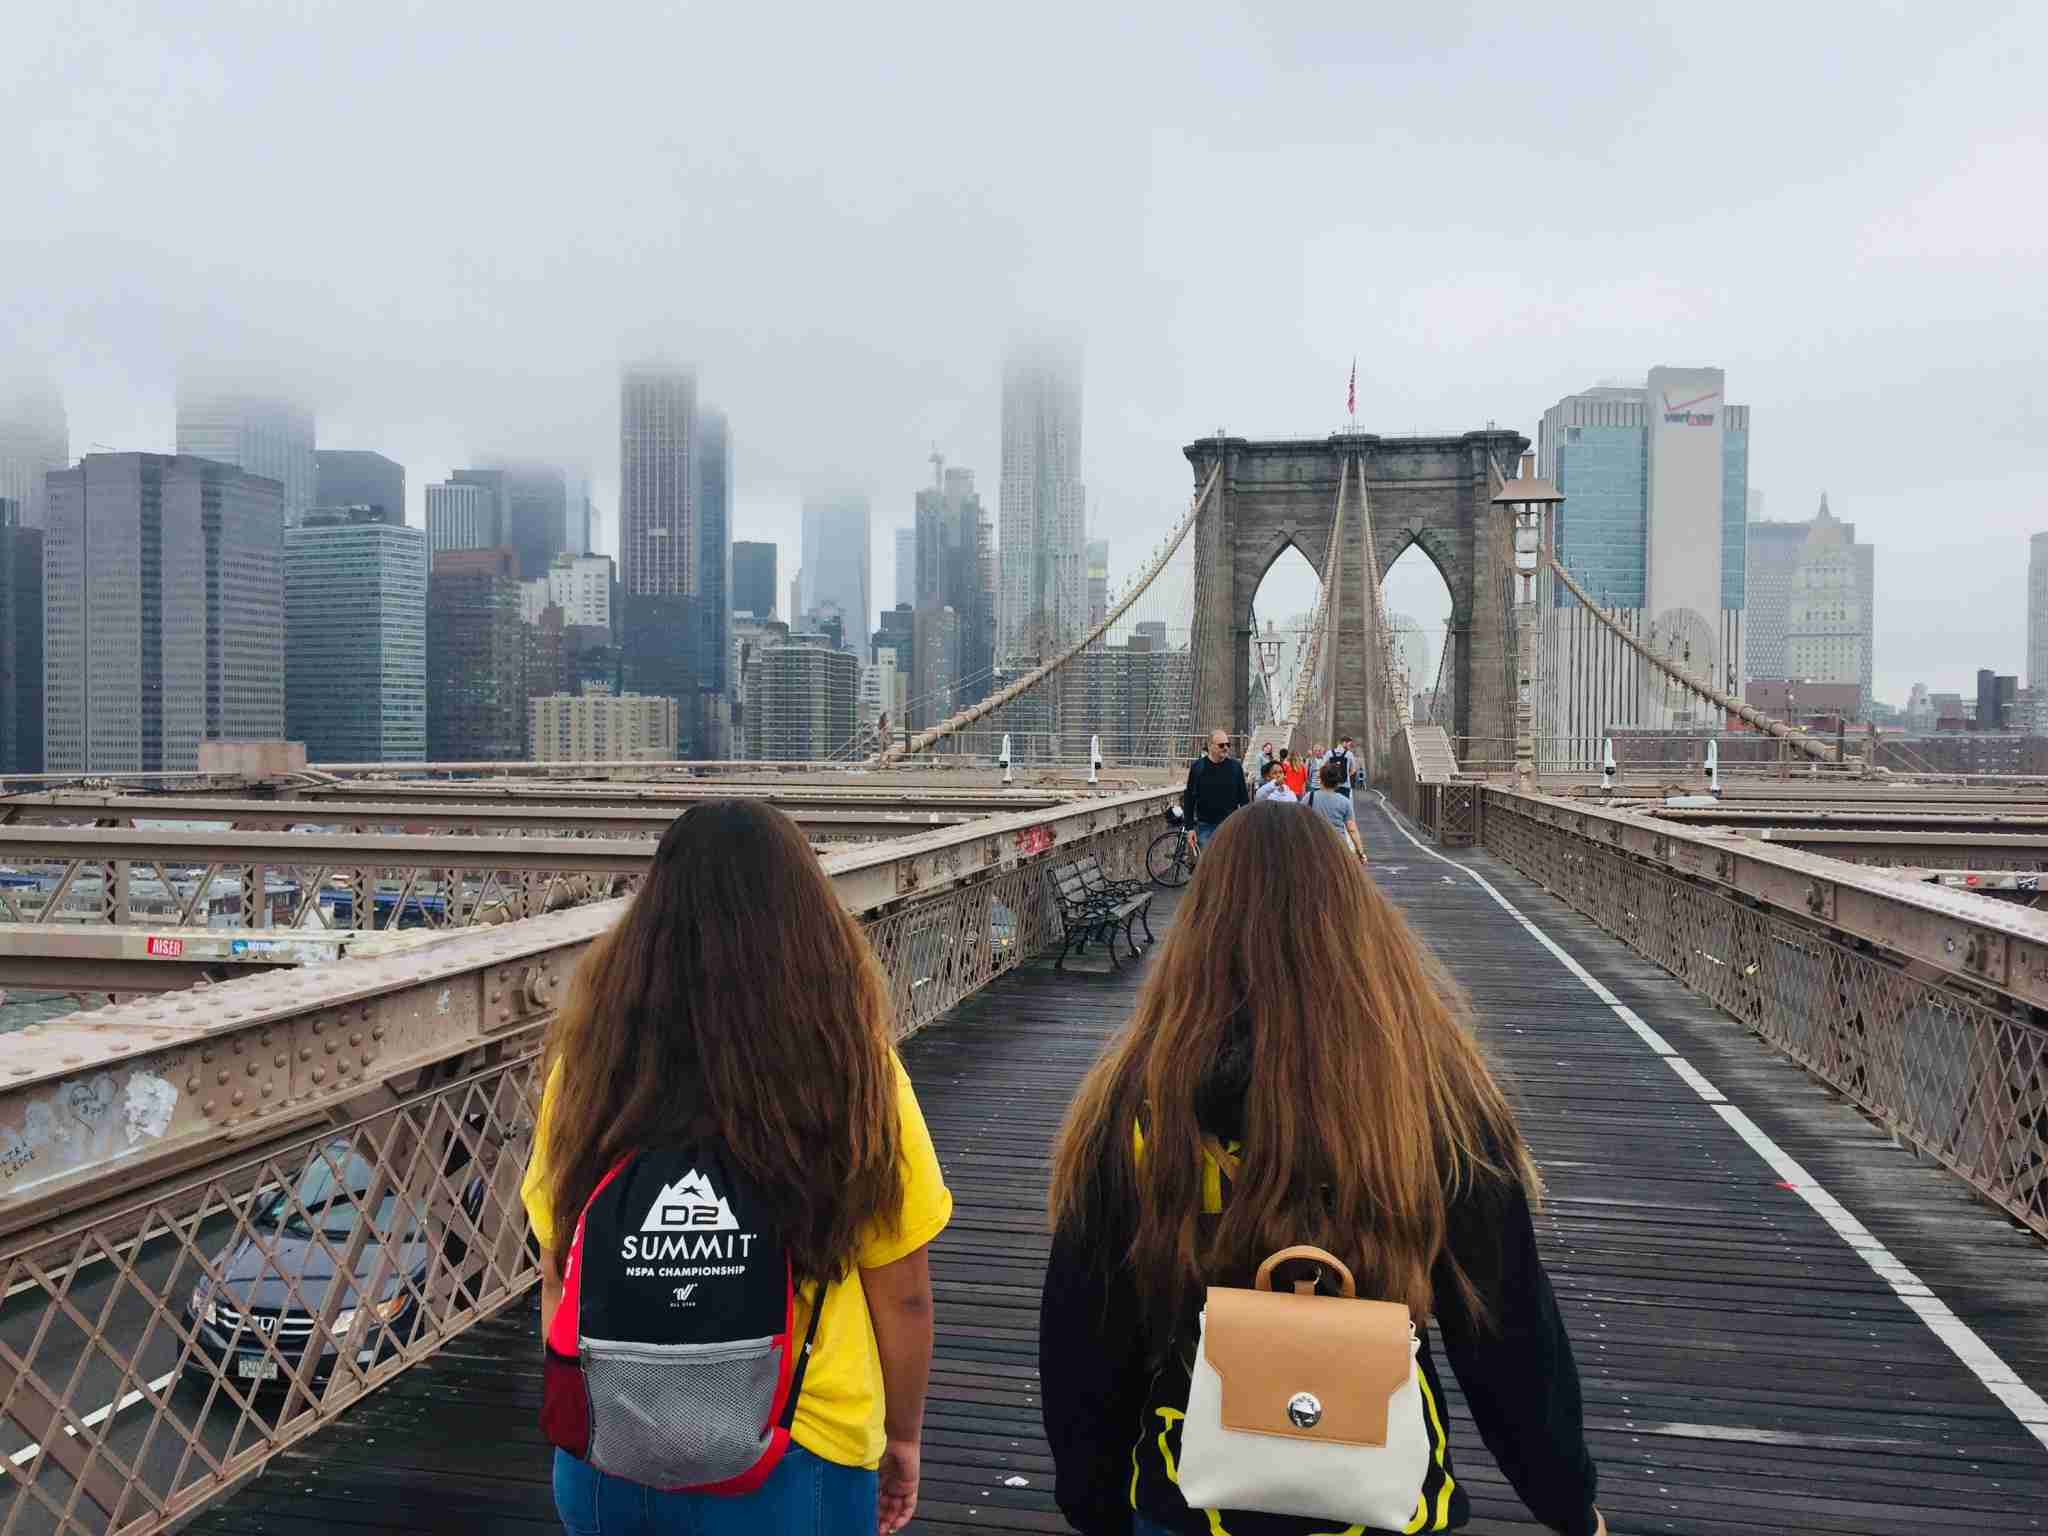 With Manhattan draped in morning clouds, our walk across the Brooklyn Bridge was epic. (photo by 2DadsWithBaggage.com)